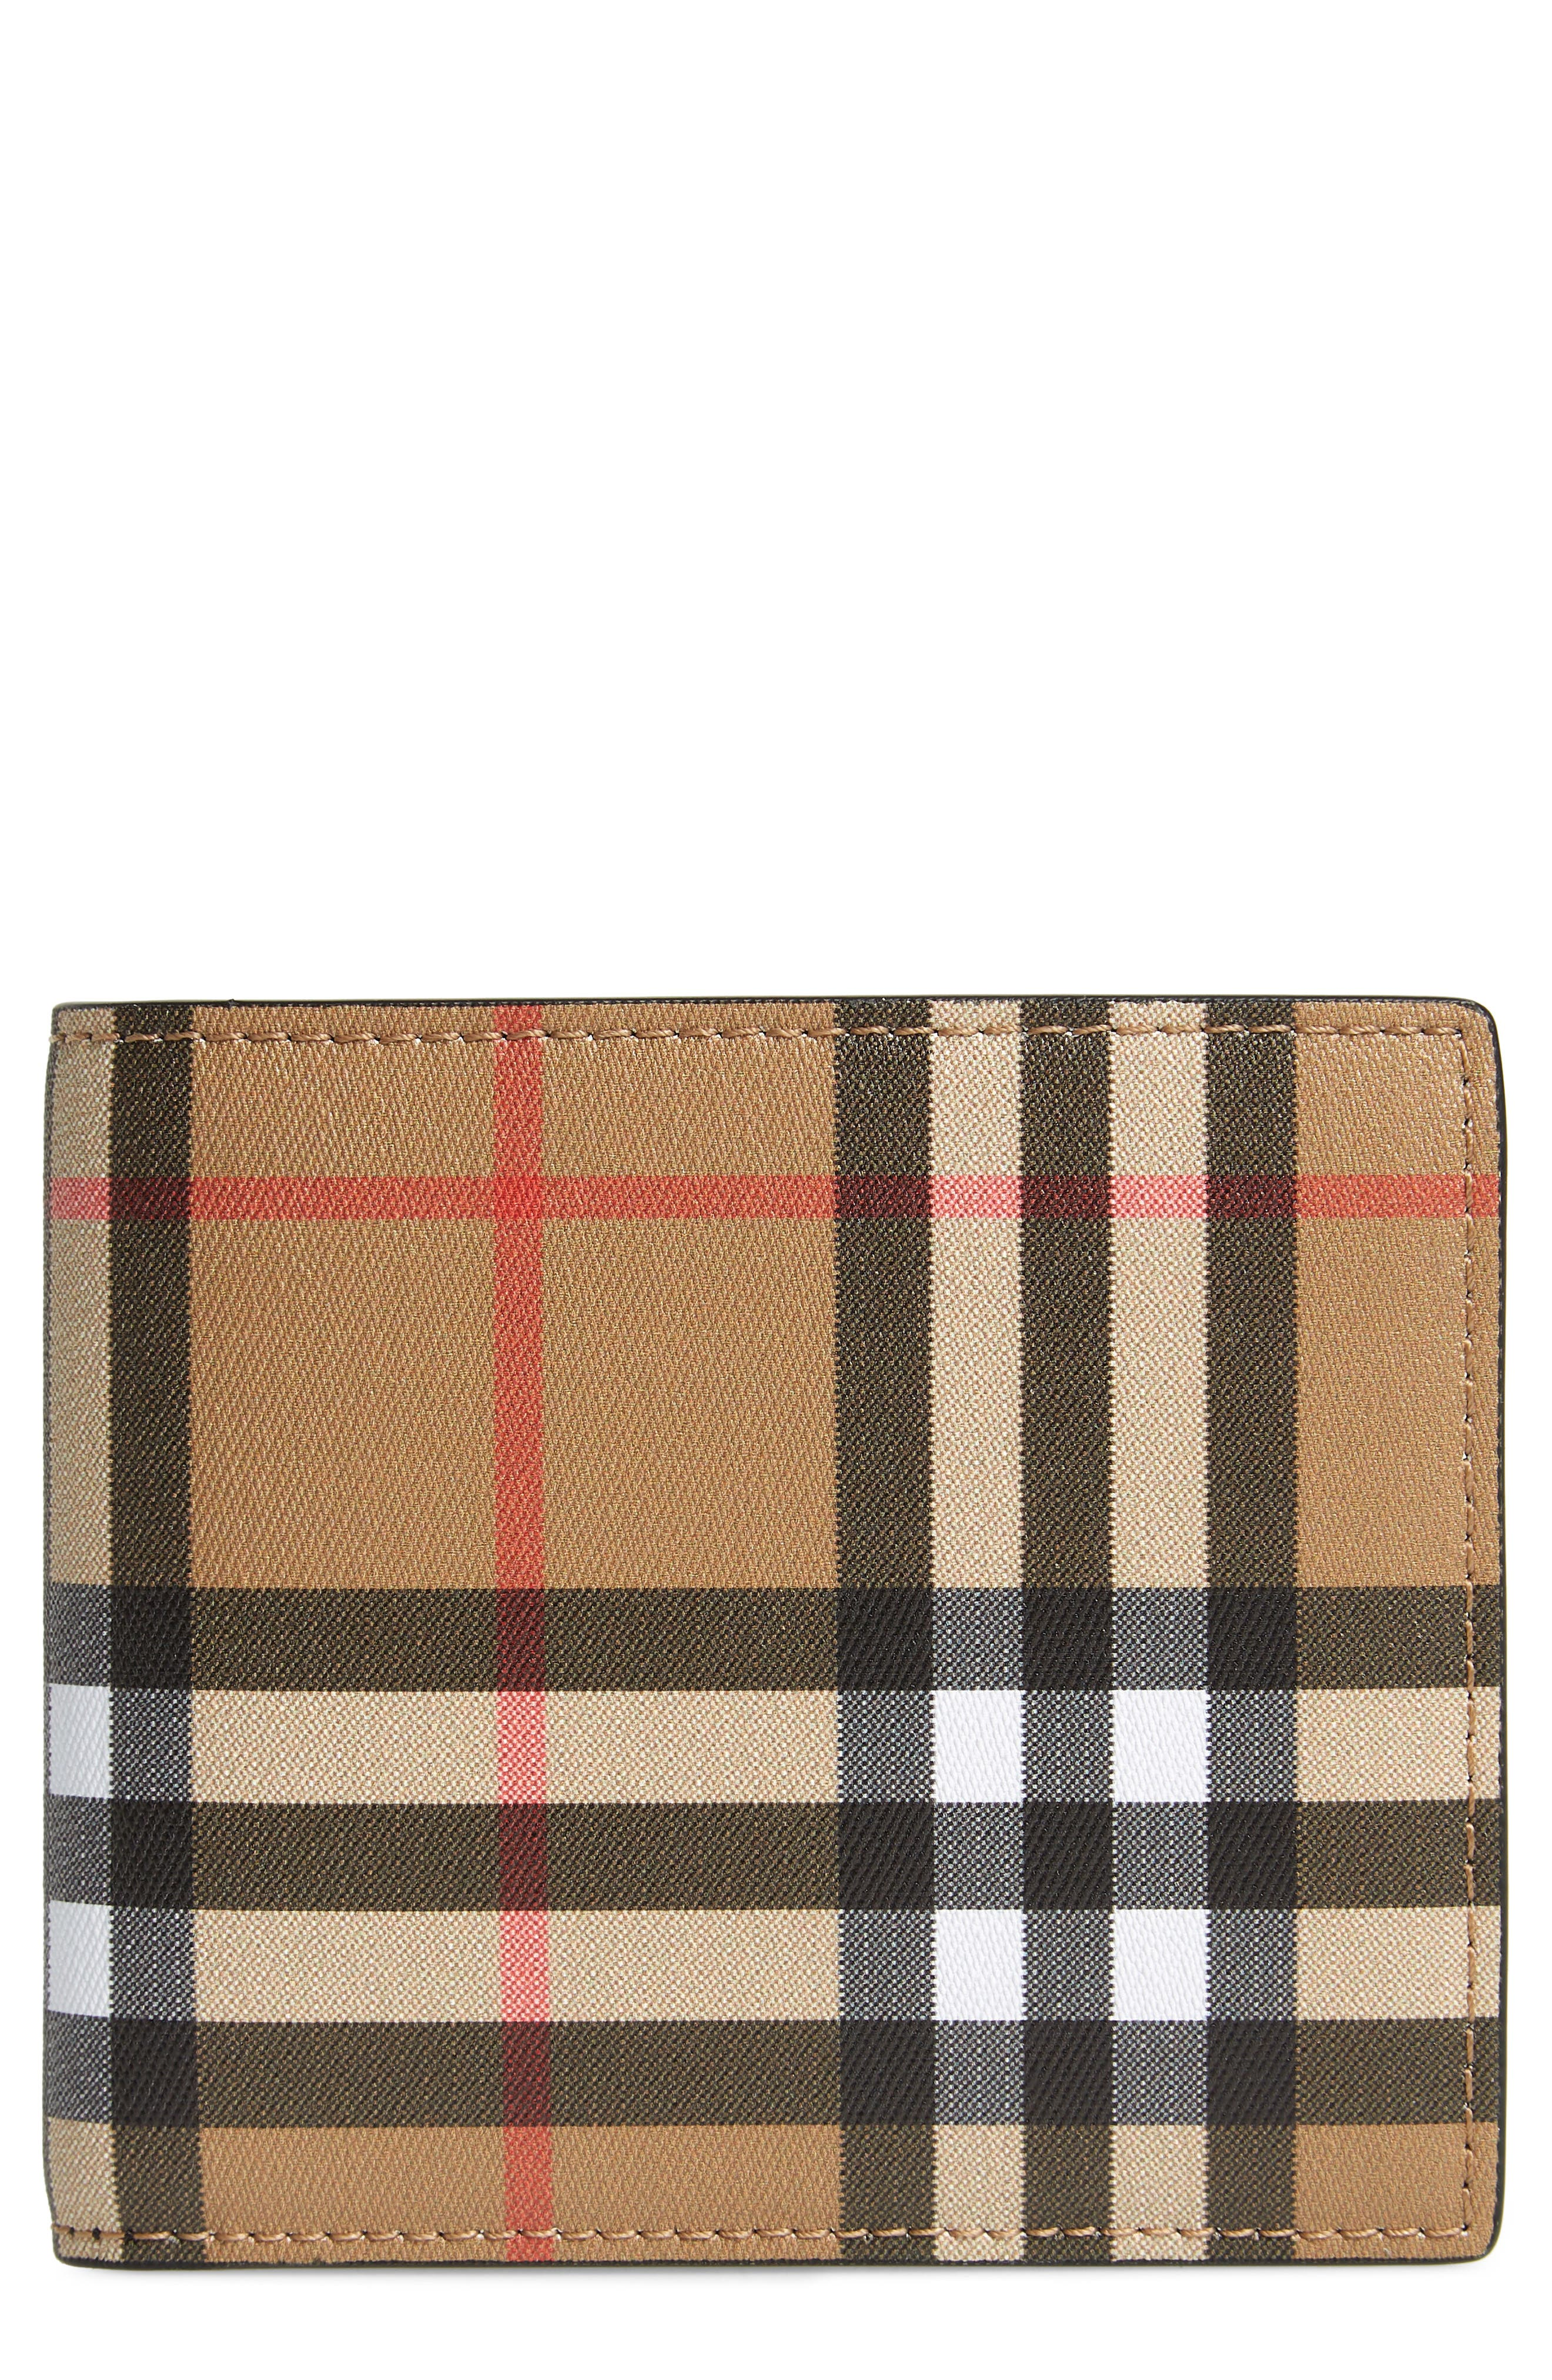 BURBERRY, Horseferry Leather Wallet, Main thumbnail 1, color, 001